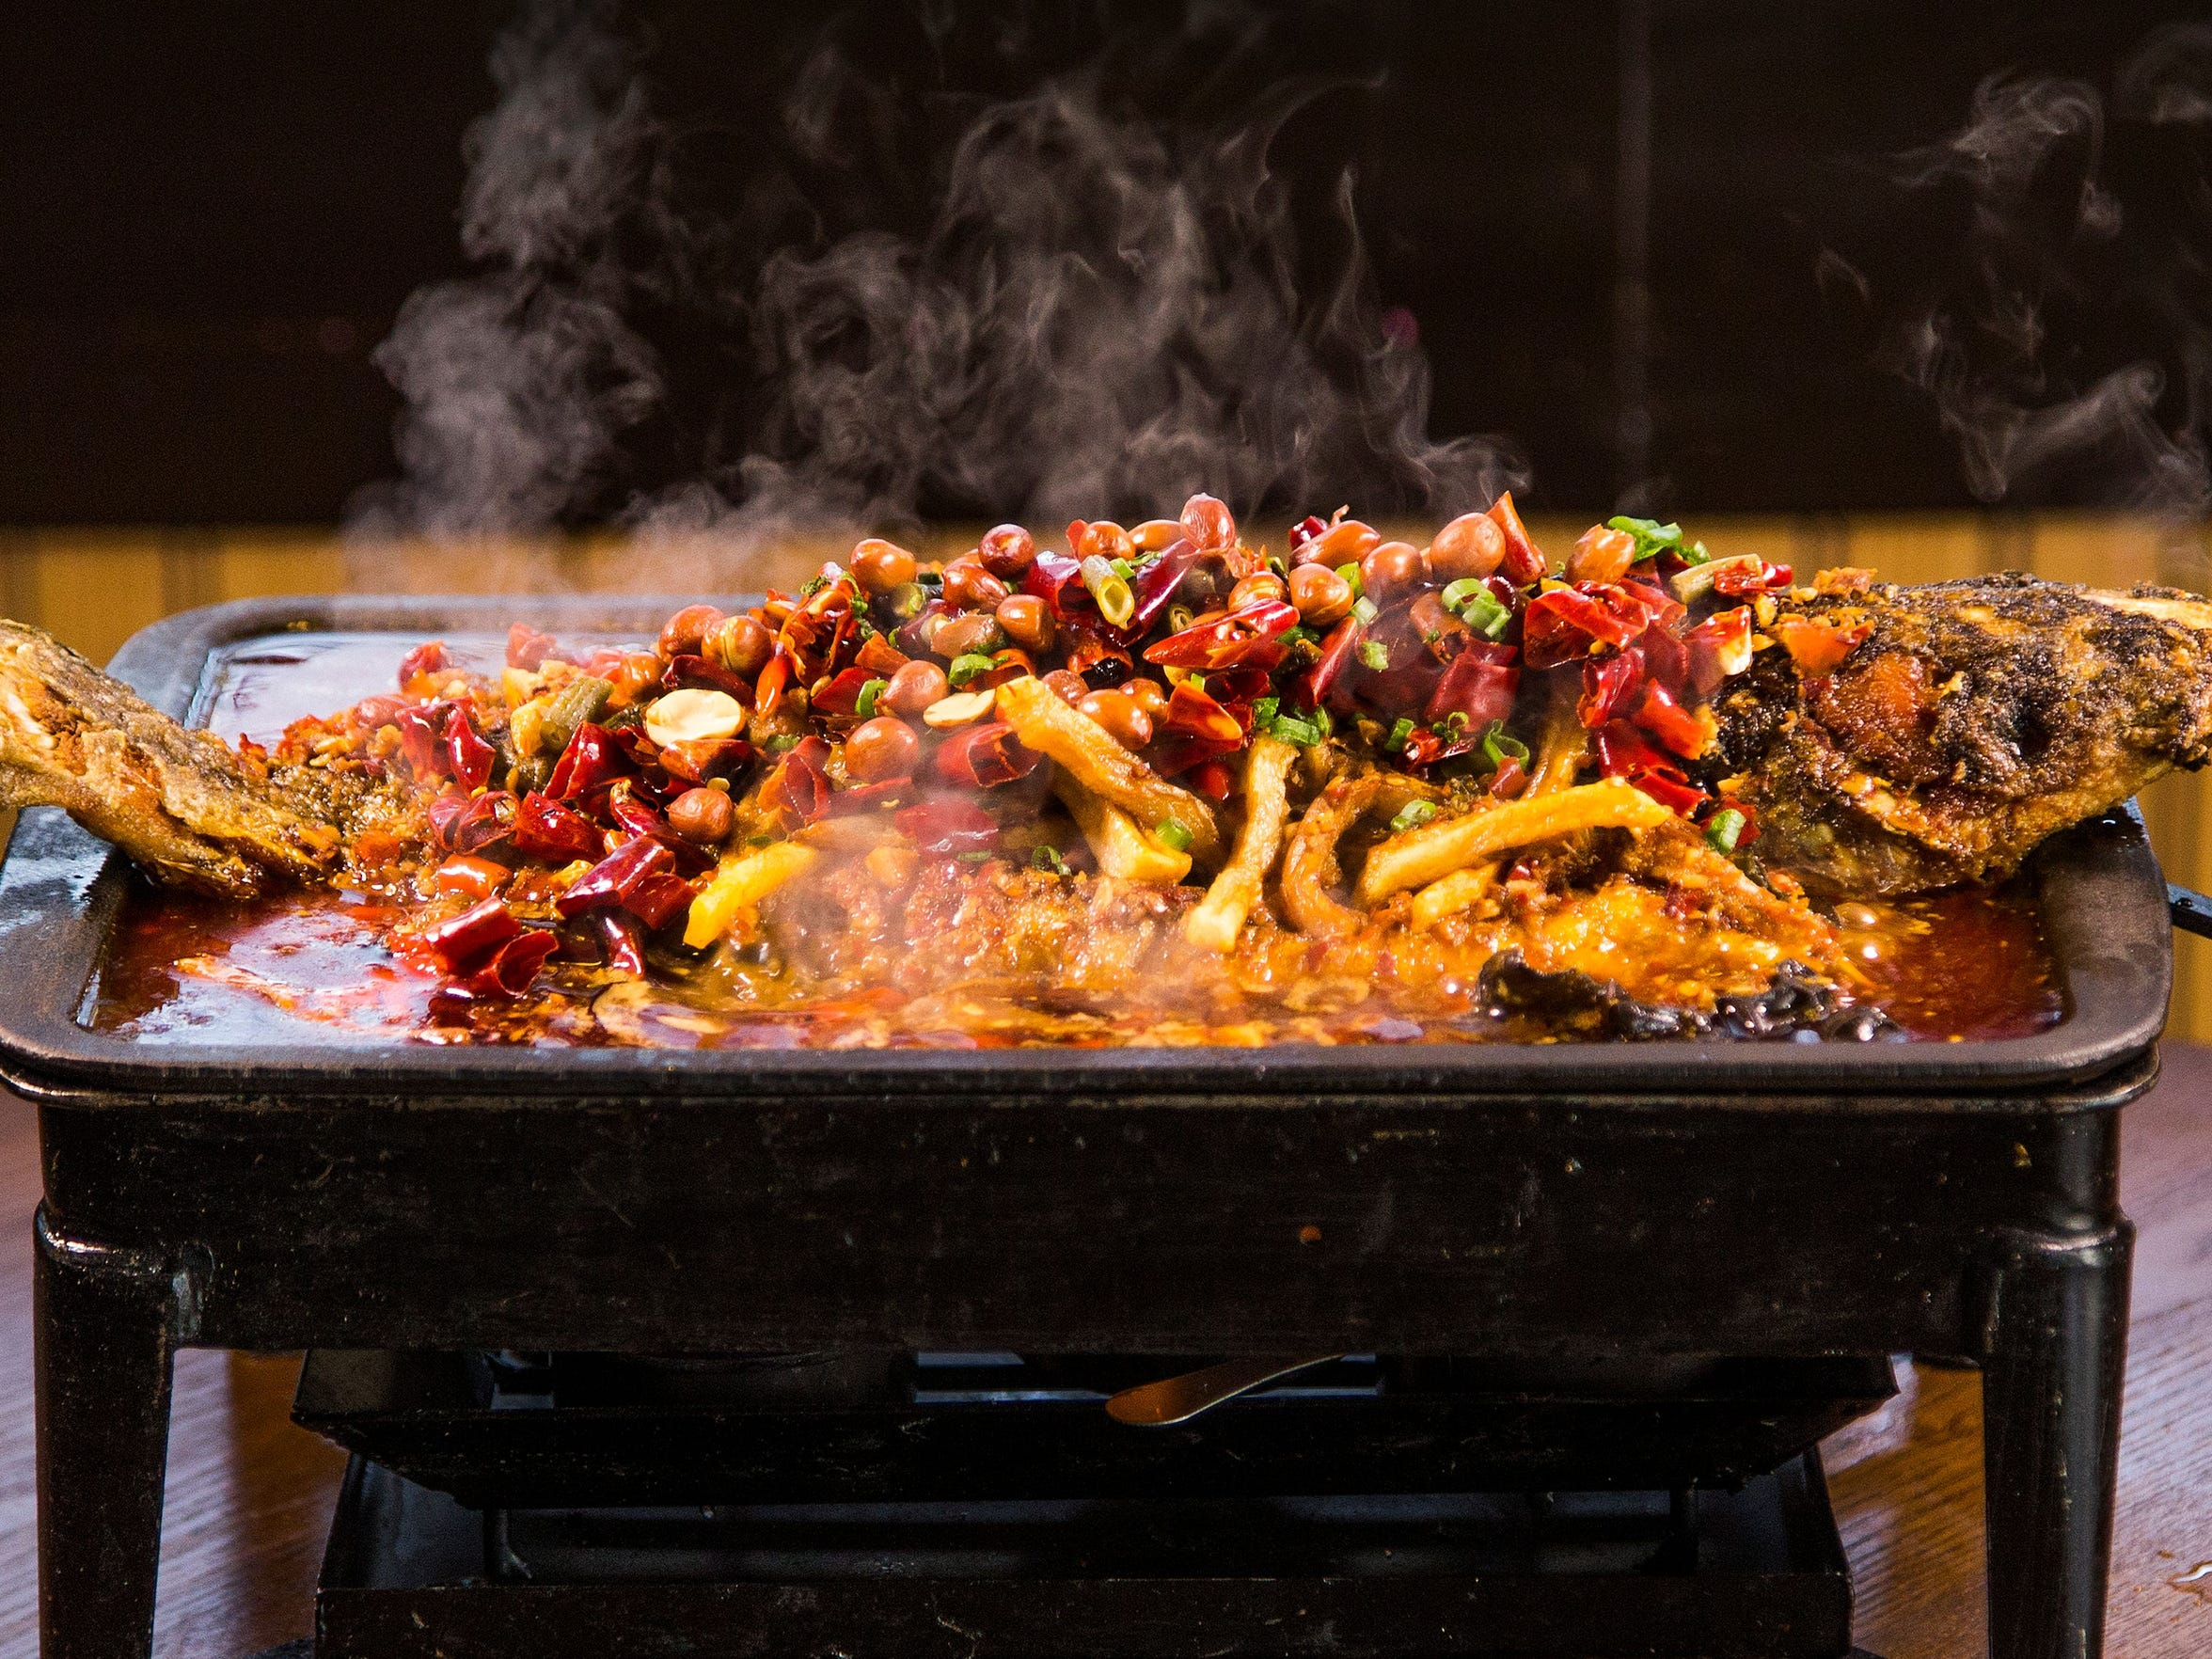 Original Cuisine boasts a lengthy menu of dishes that tweak traditional Sichuan cuisine while maintaining its essential character. Pictured is the barbecue fish.